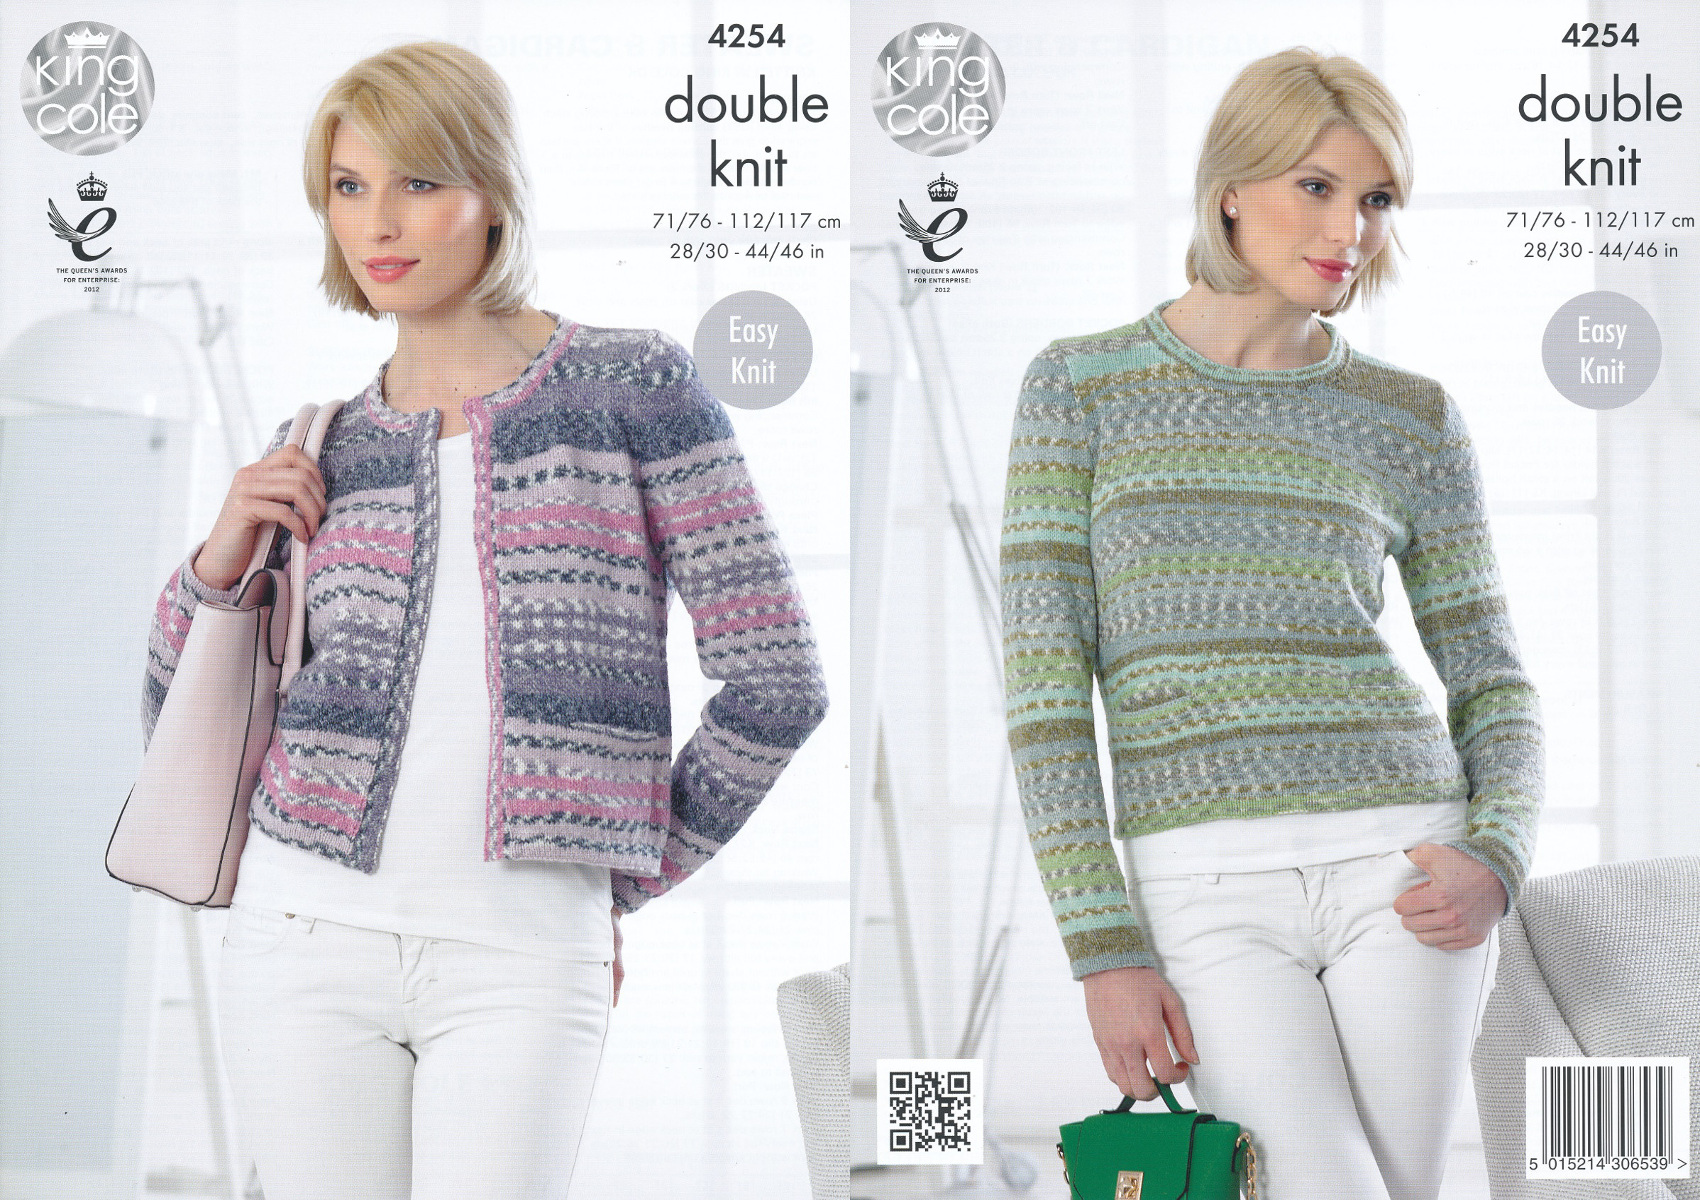 Round Neck Sweater Knitting Pattern : Round Neck Cardigan Knitting Patterns - Bronze Cardigan